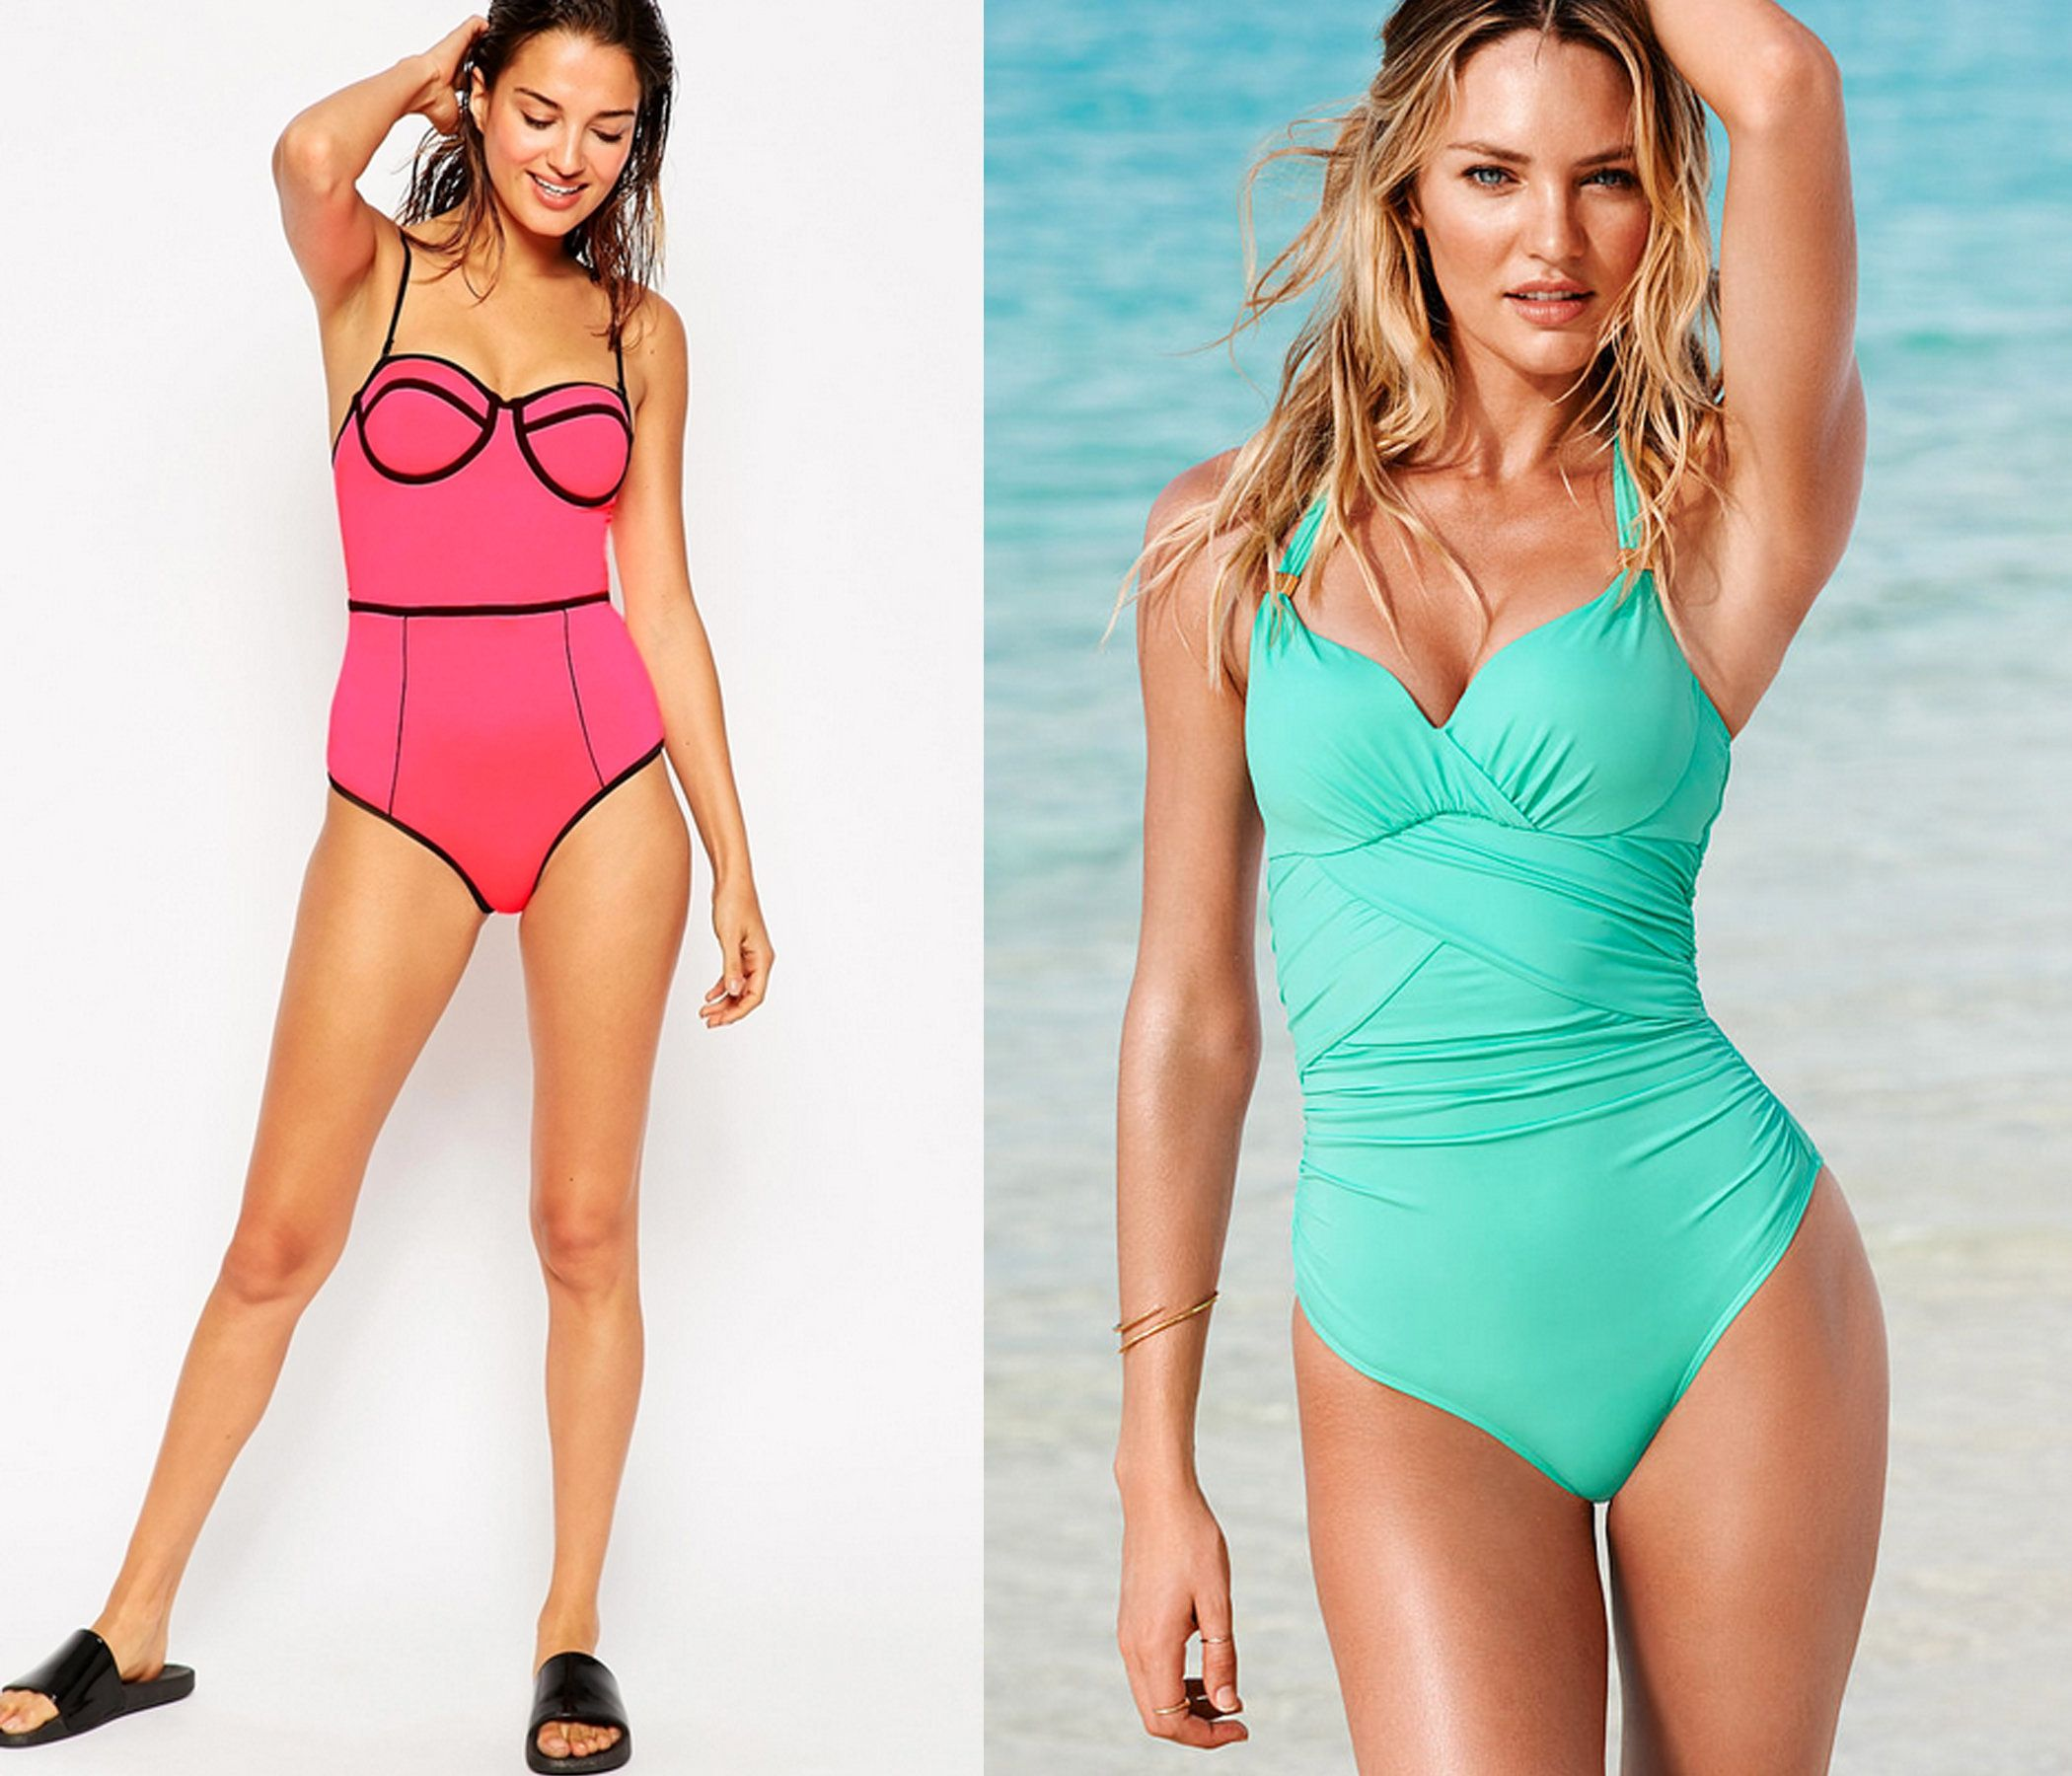 The Most Flattering One Piece Bathing Suits For Every Body | HuffPost Life